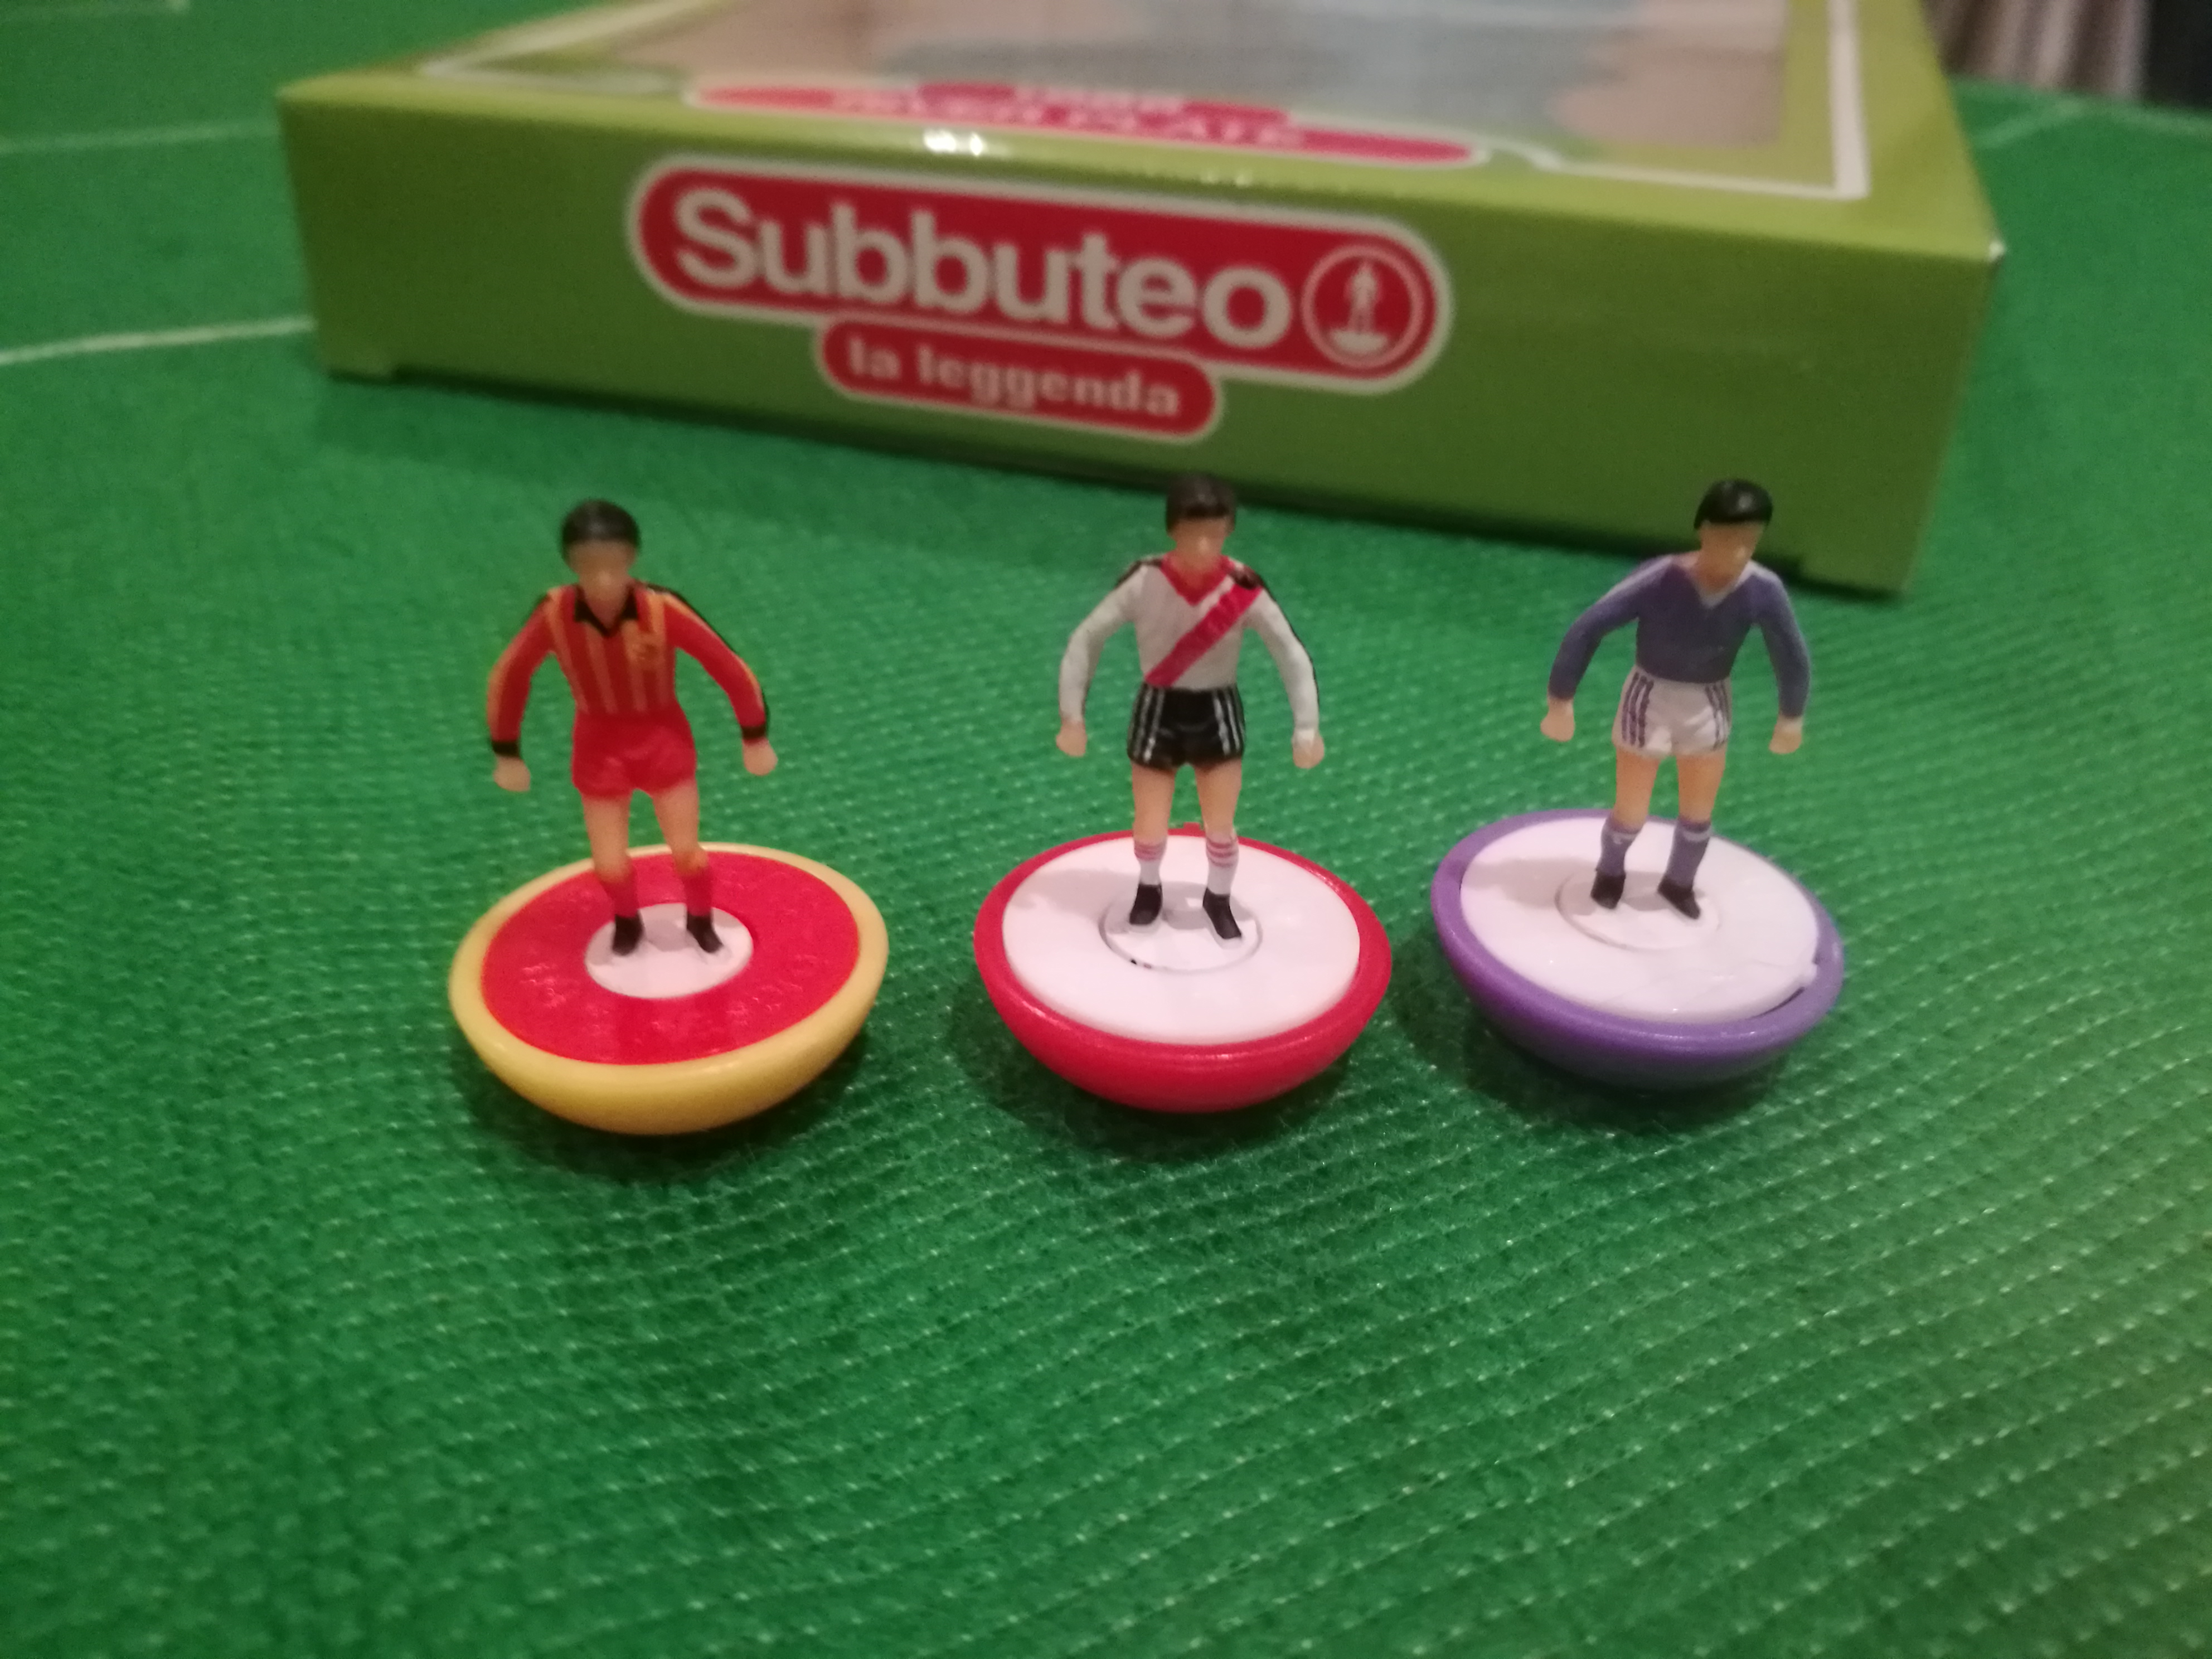 How to get Subbuteo teams for just £4.41